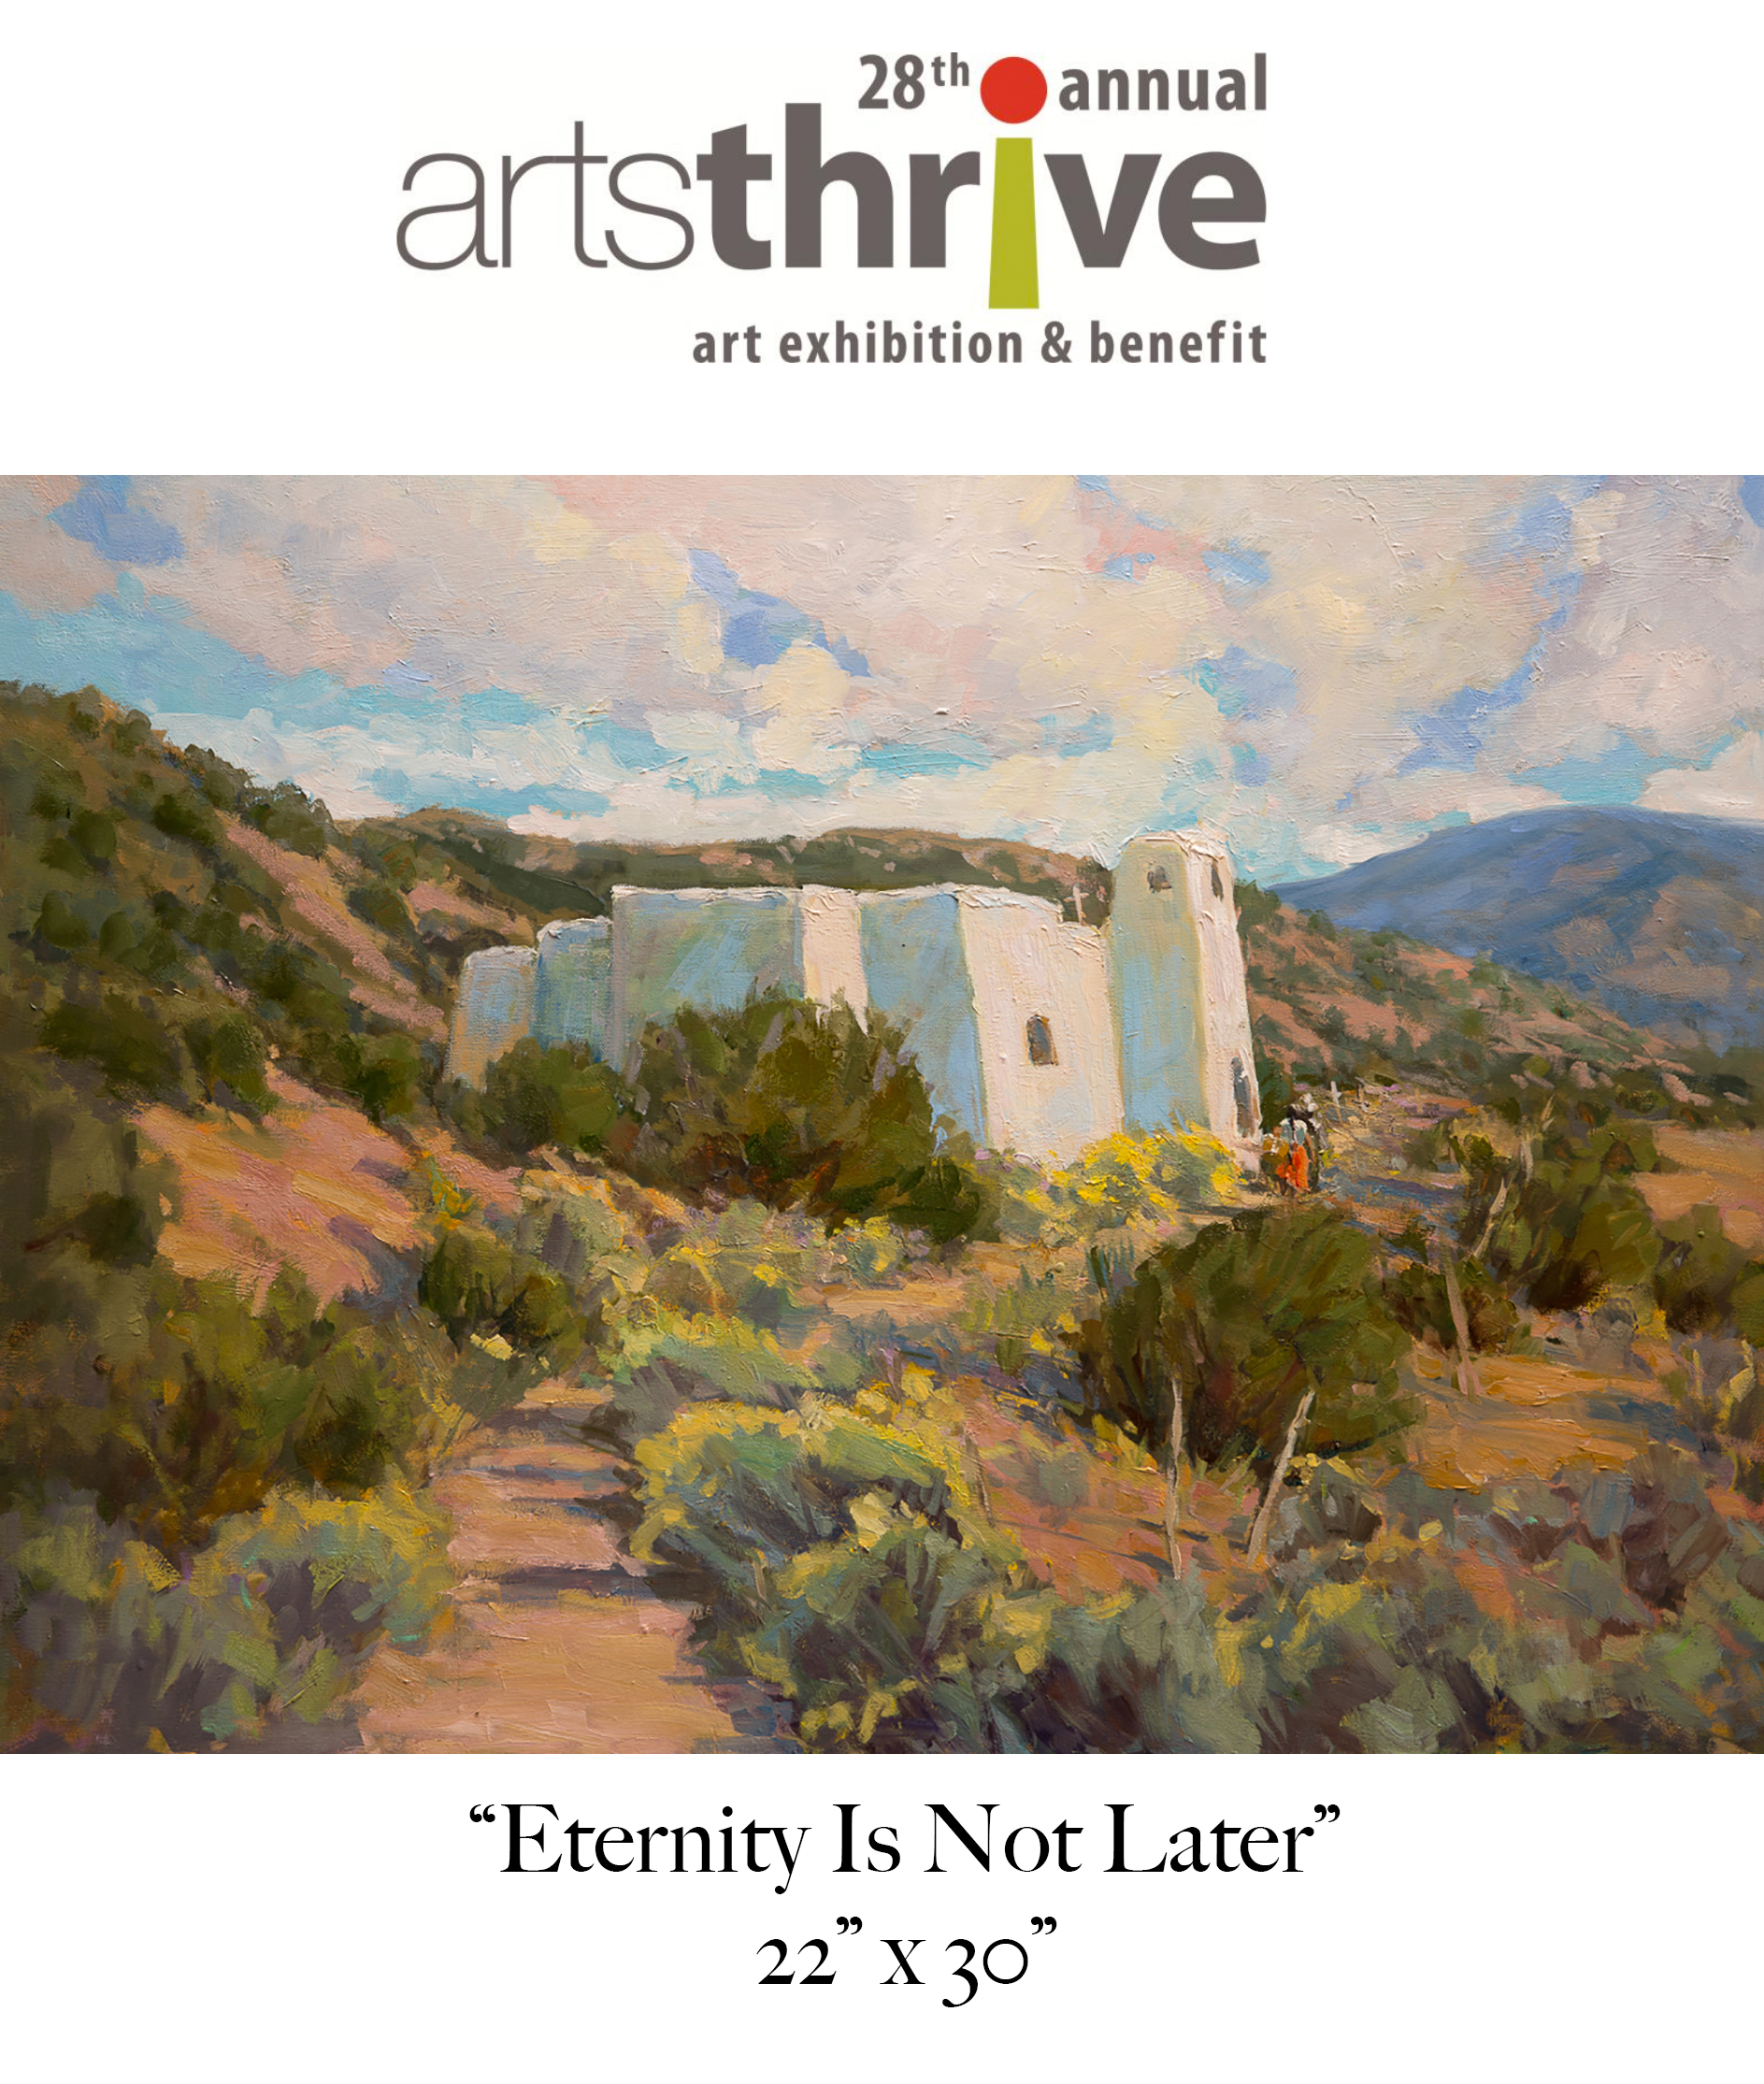 ArtsThrive: Art Exhibition & Benefit Oct. 19 - Dec. 2 - I have been invited as one of 100 artists to exhibit this fall at the Albuquerque Museum as part of their ArtsThrive Exhibition & Benefit October 19th - December 2nd. I have been selected for the special honor of being one of seven artists asked to display large format work. Stay tuned for more info!https://albuquerquemuseum.org/artsthrive-art-exhibition-benefit/